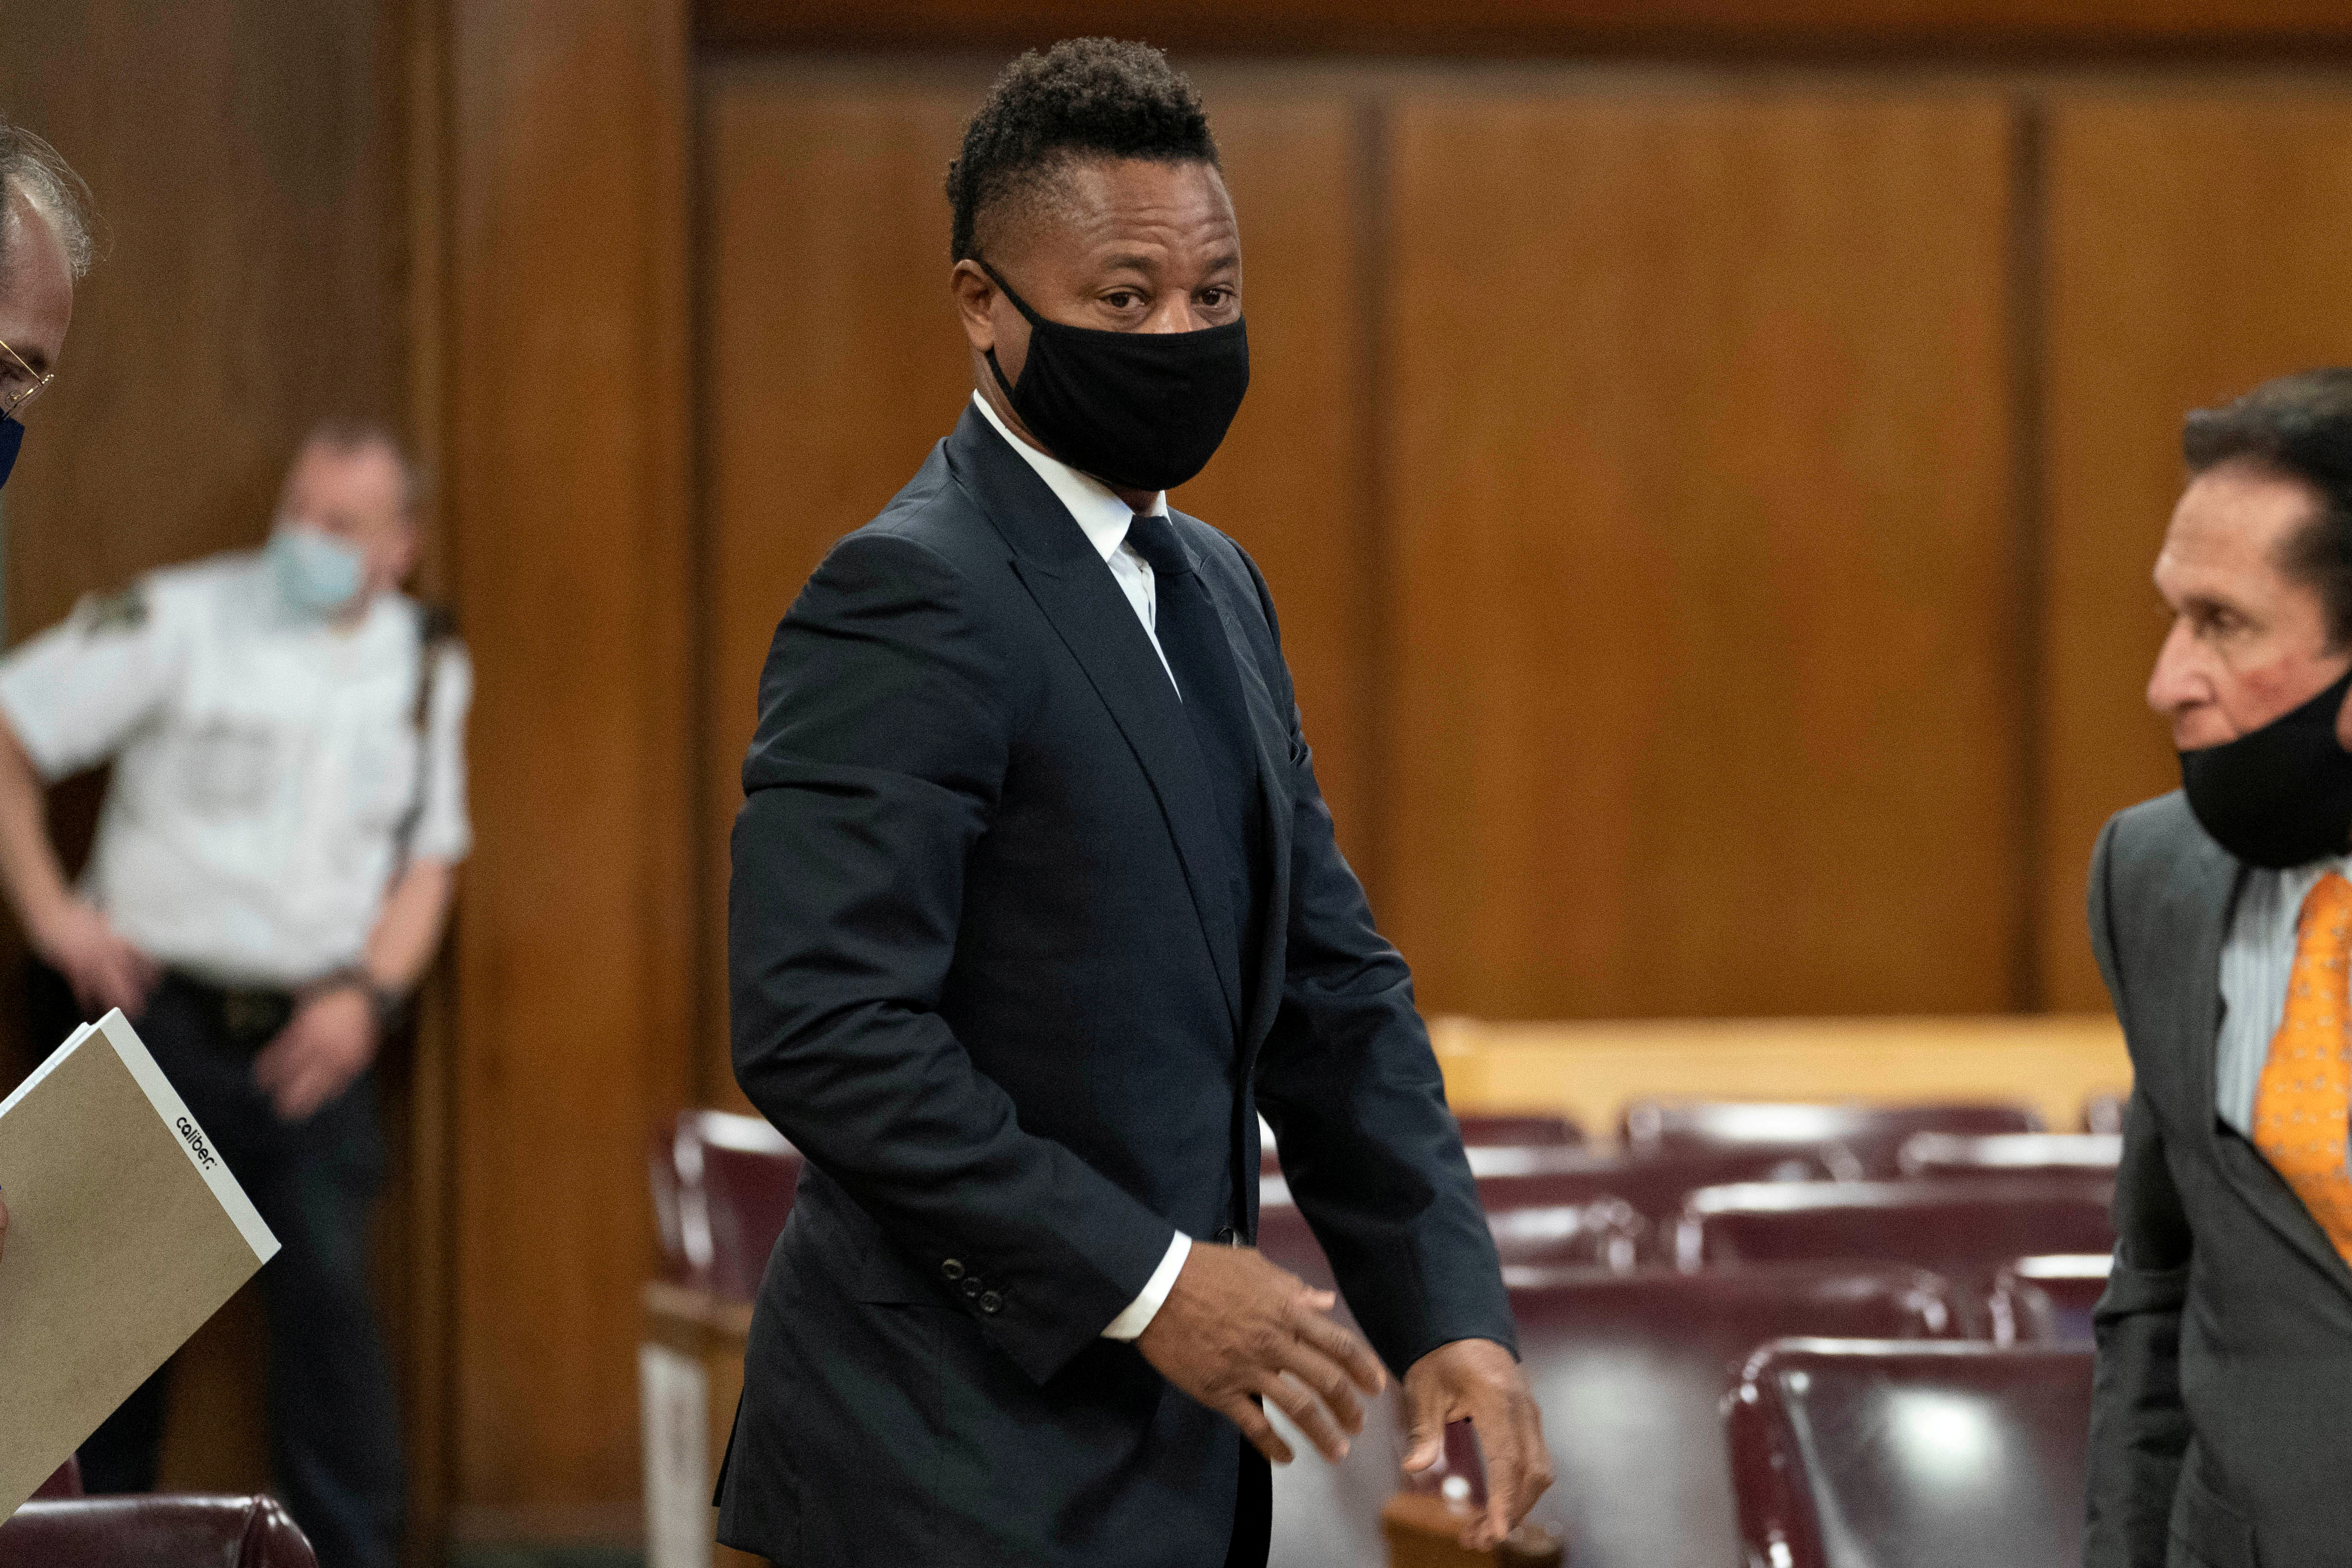 Actor Cuba Gooding Jr. appears in New York Criminal Court in the Manhattan borough of New York City, New York, U.S., August 13, 2020. Steven Hirsch/Pool via REUTERS